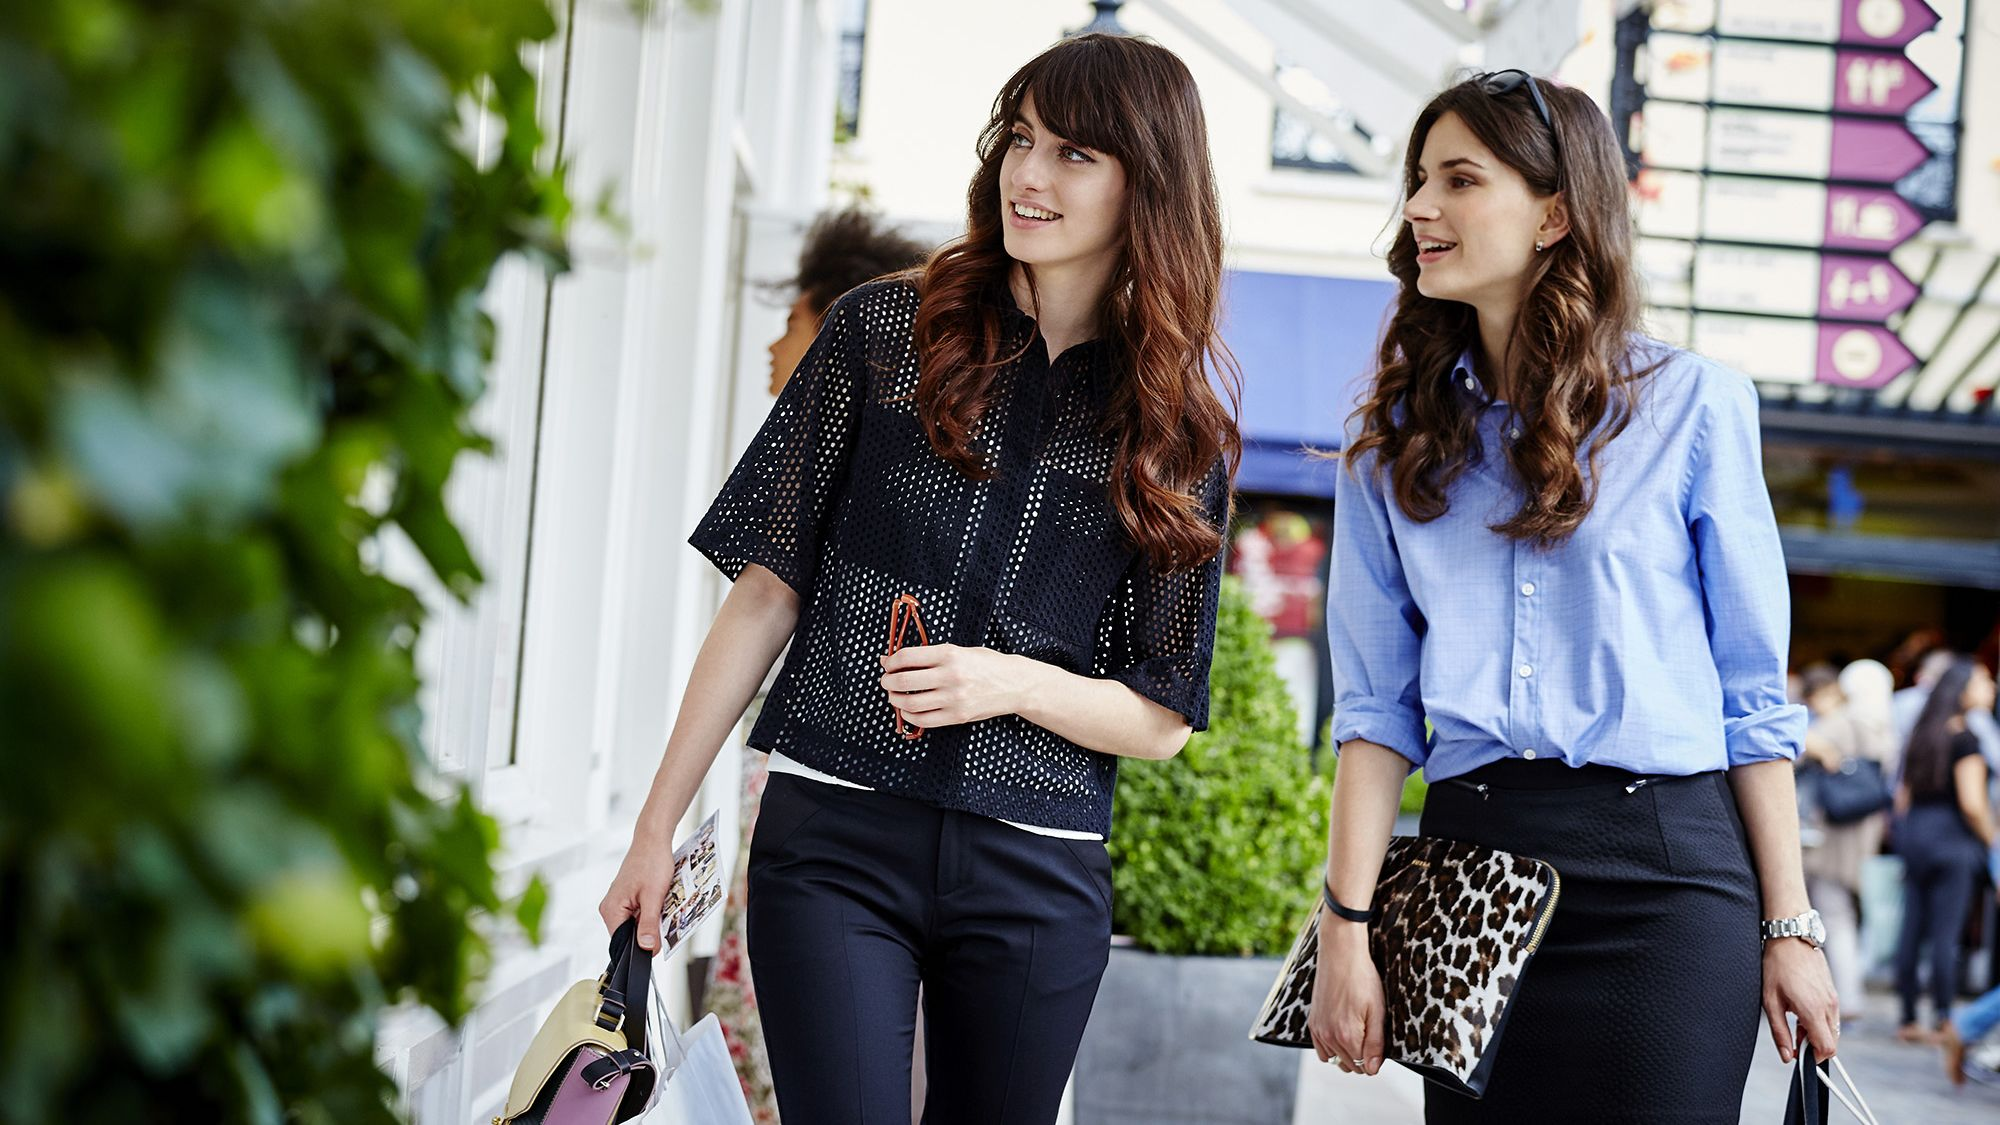 The Bicester Village Shopping Collection™ Experience at La Vallée Village